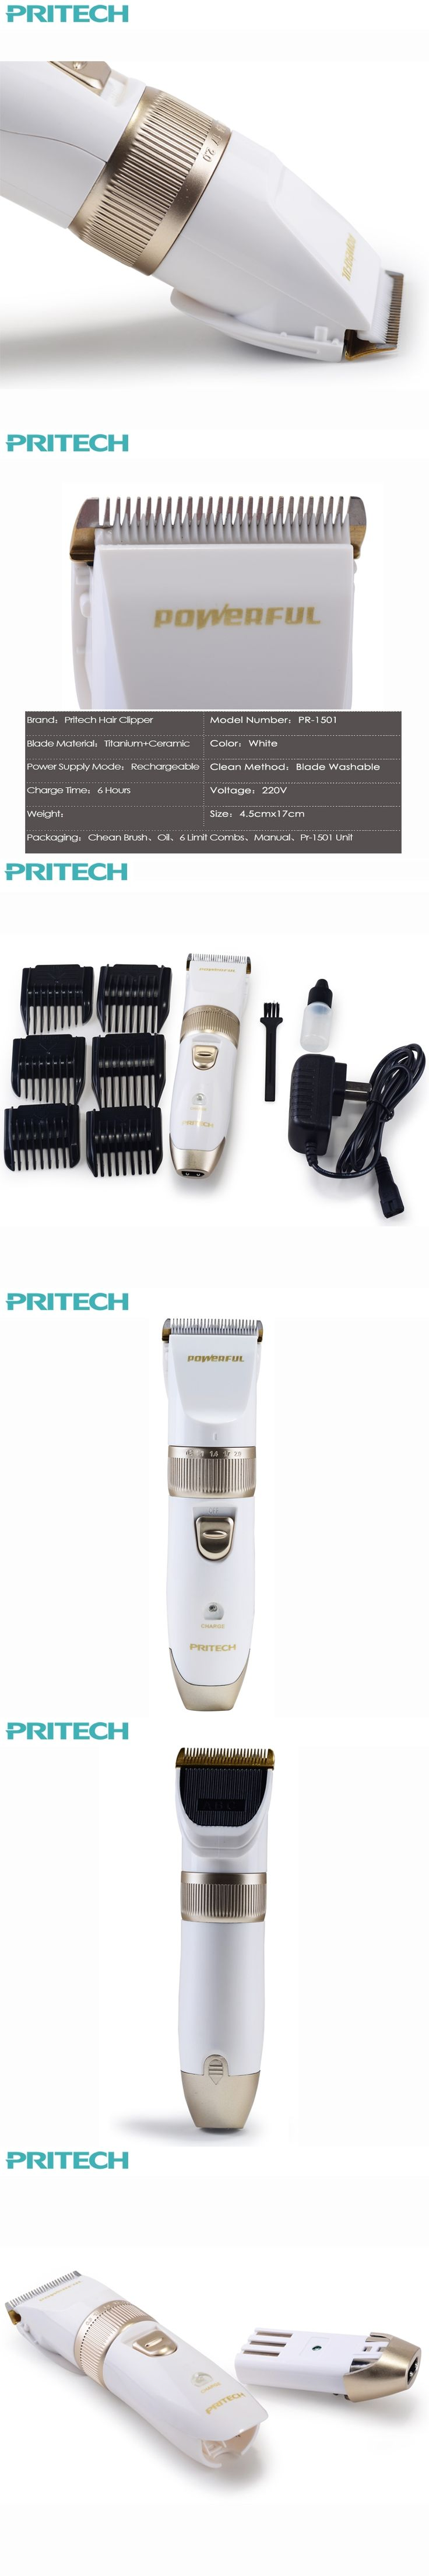 Pritech Electric Hair Trimmer For Men's Shaver Quick Charging Hair Clipper With 6 Limit Comb Hair Cutting Machine#PR-1501